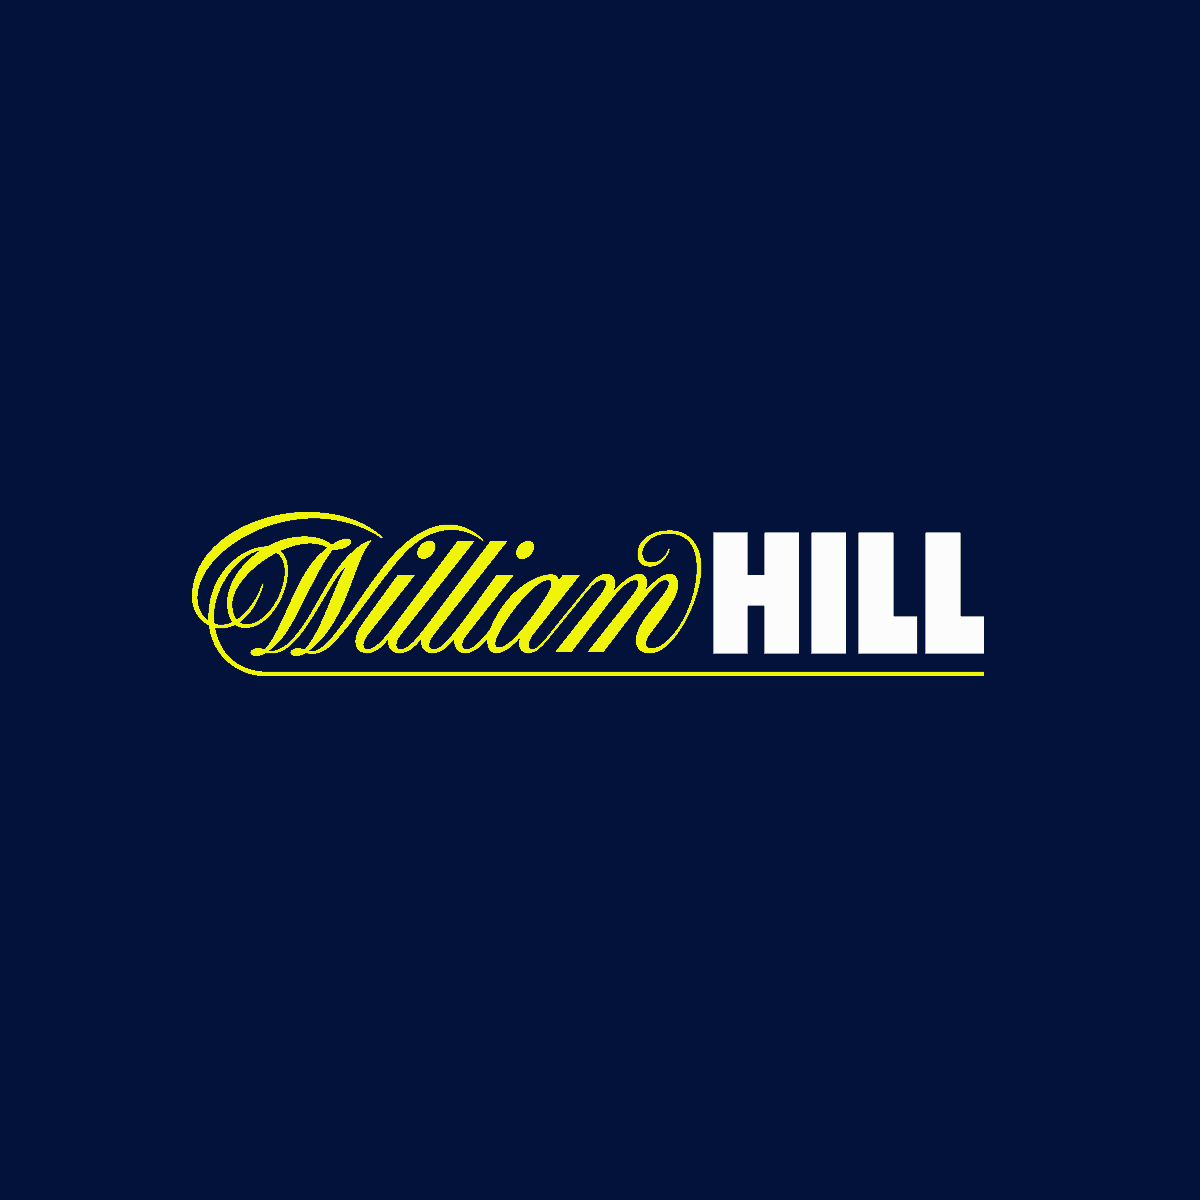 6. William Hill